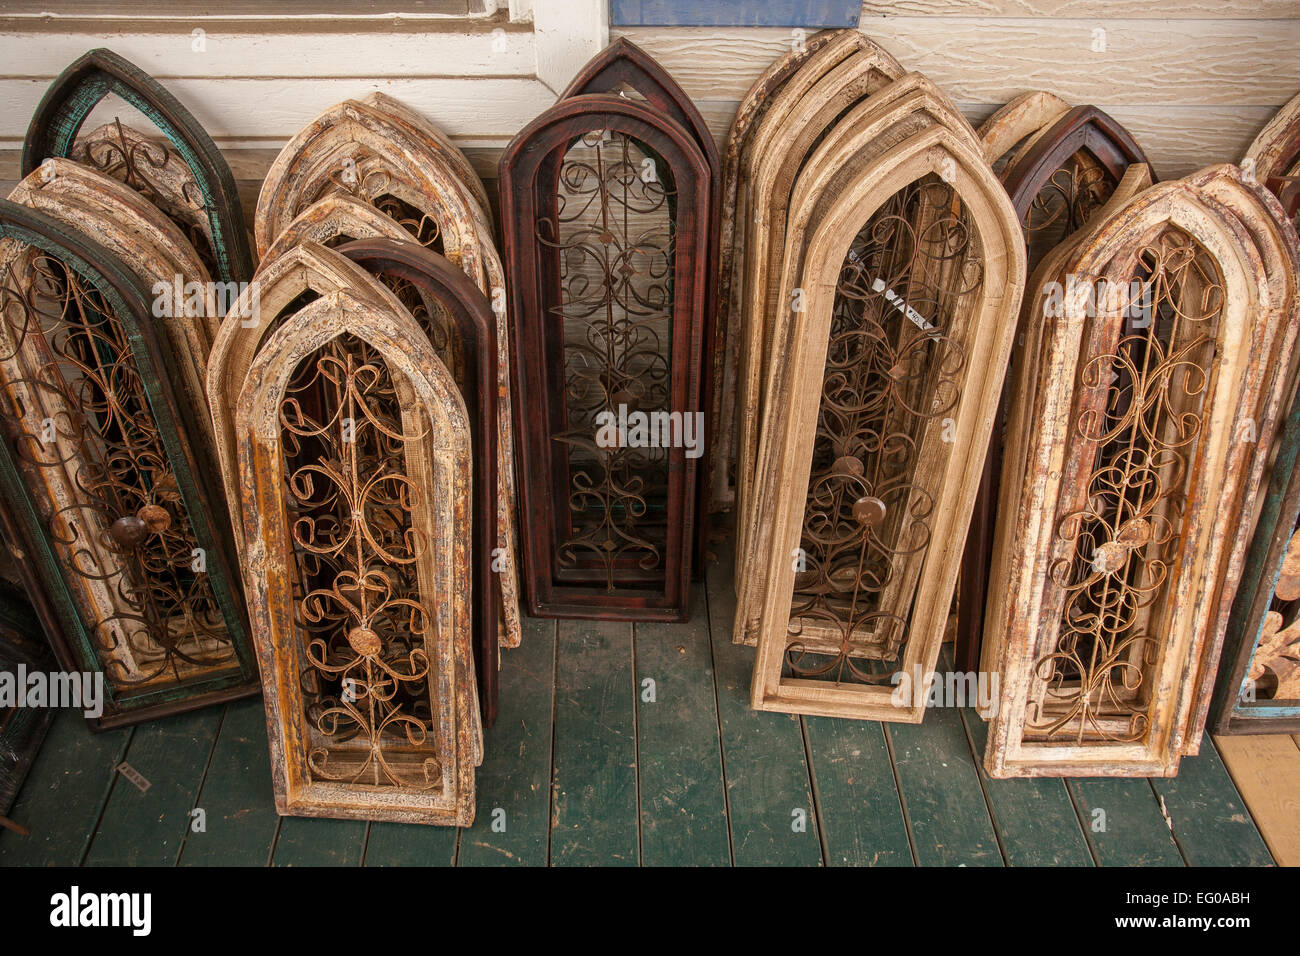 Stacks of rustic window shutters with metal scrolled decorations displayed  at home decorative accessories store